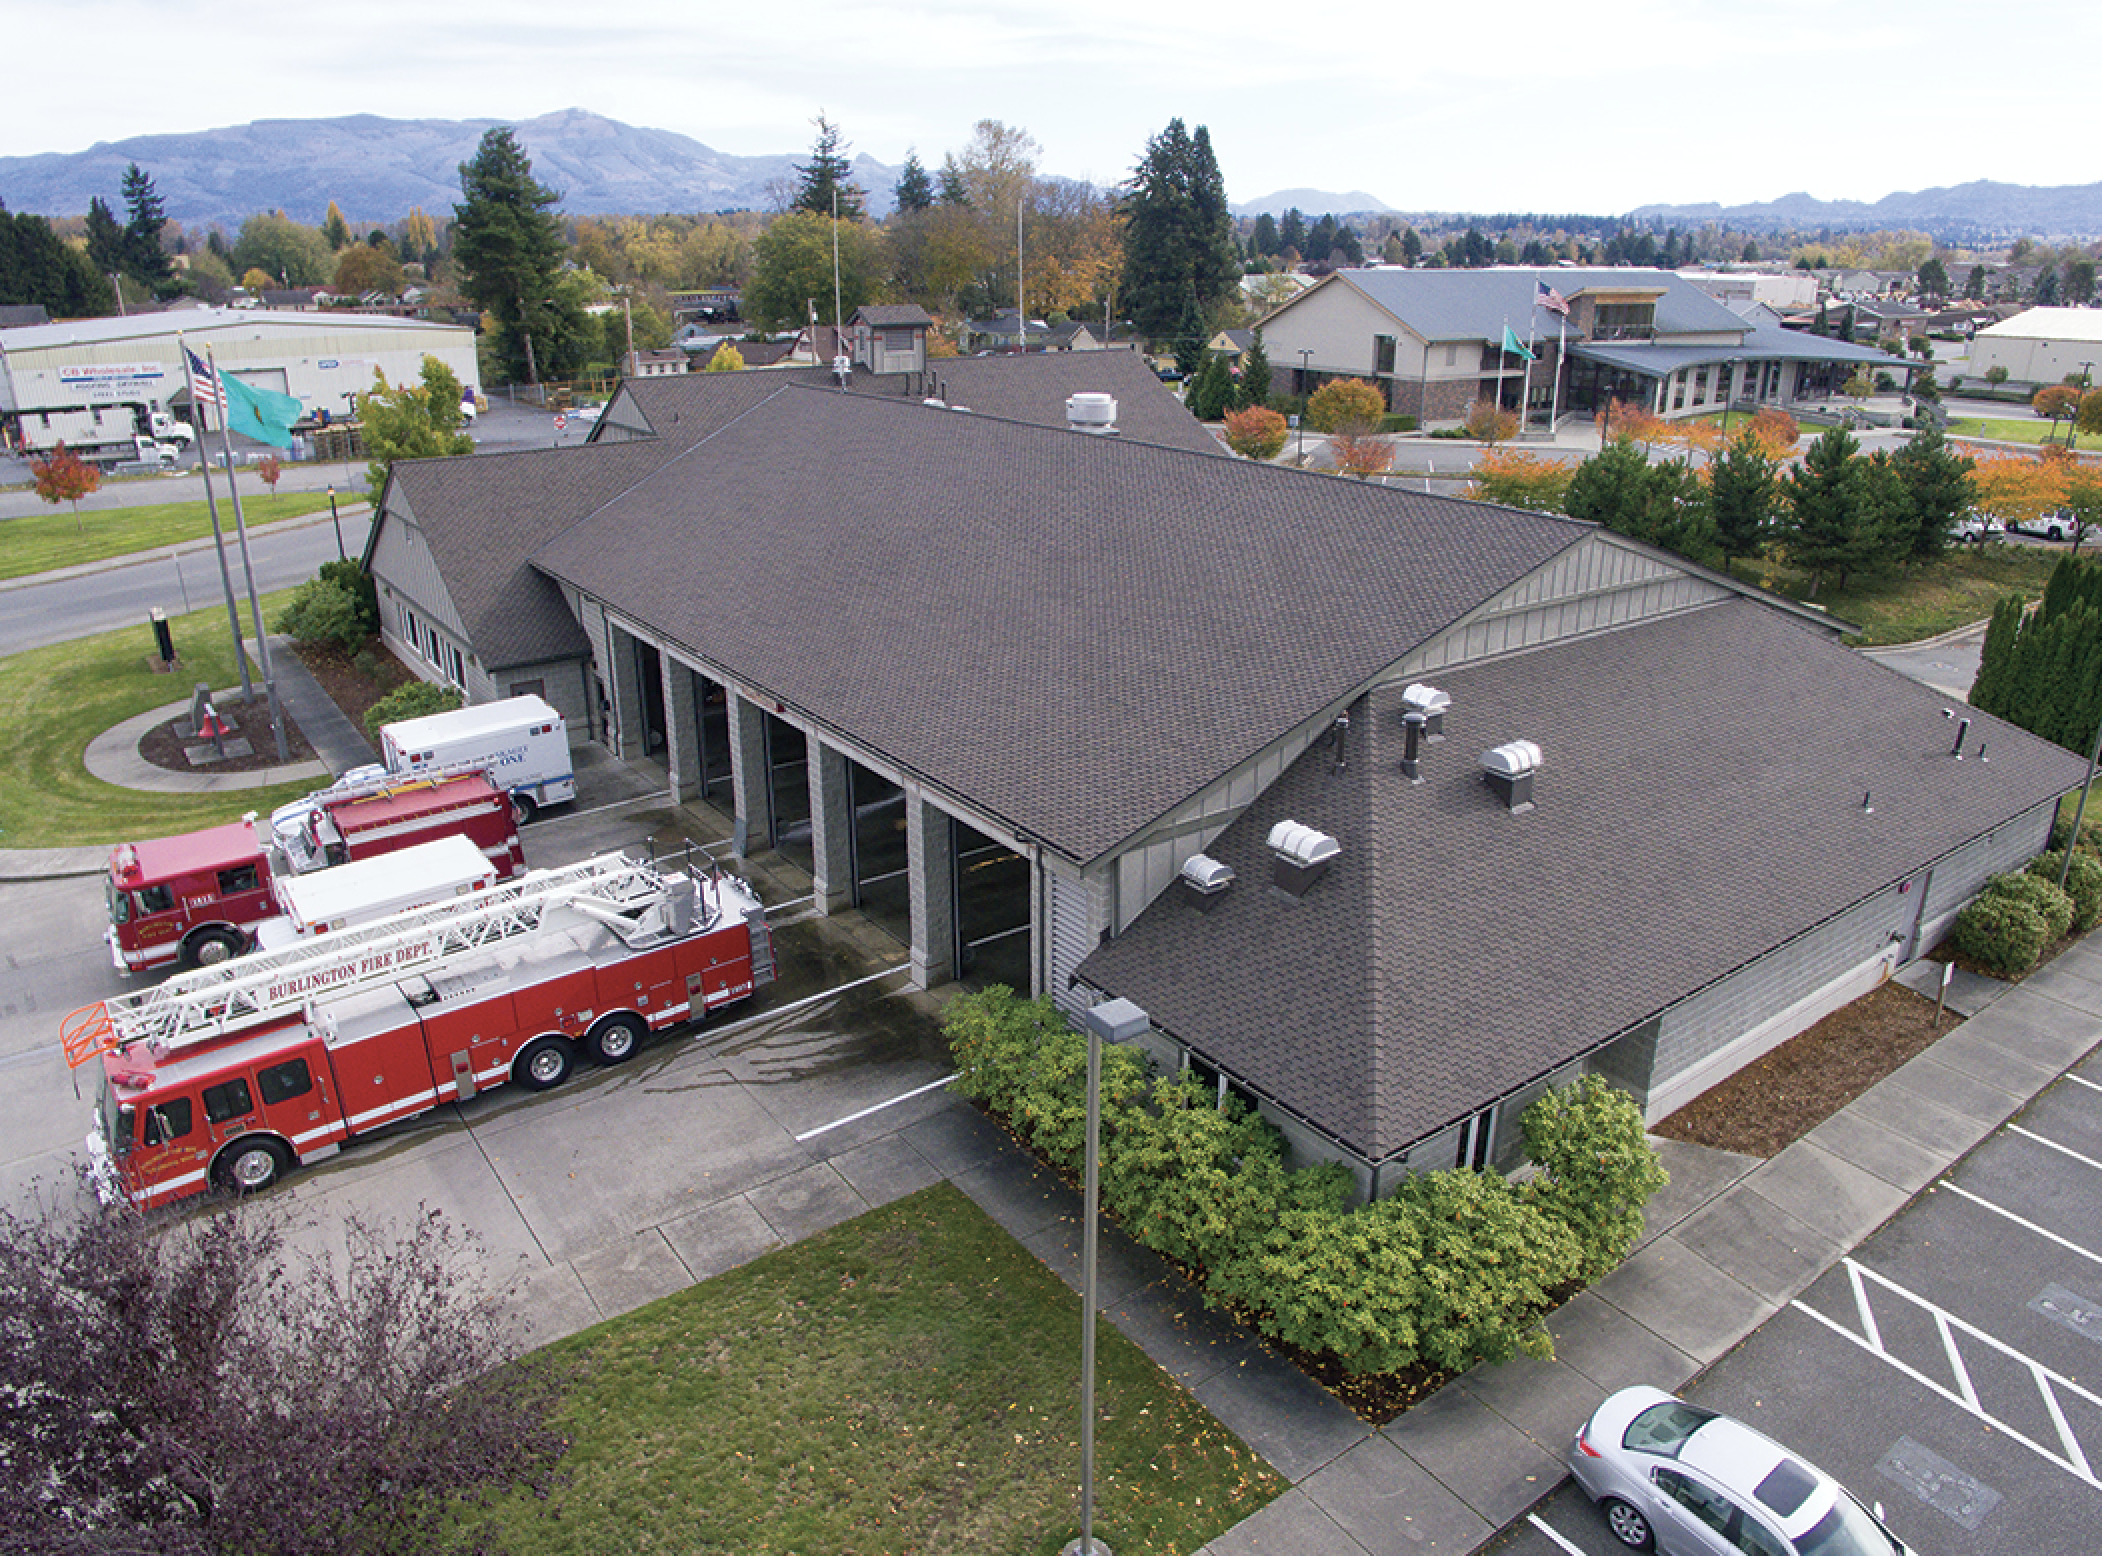 When the Burlington Fire Department decided to replace its aging steep-slope system, the goals included finding a system that would look good, stand up to high winds and resist algae growth.